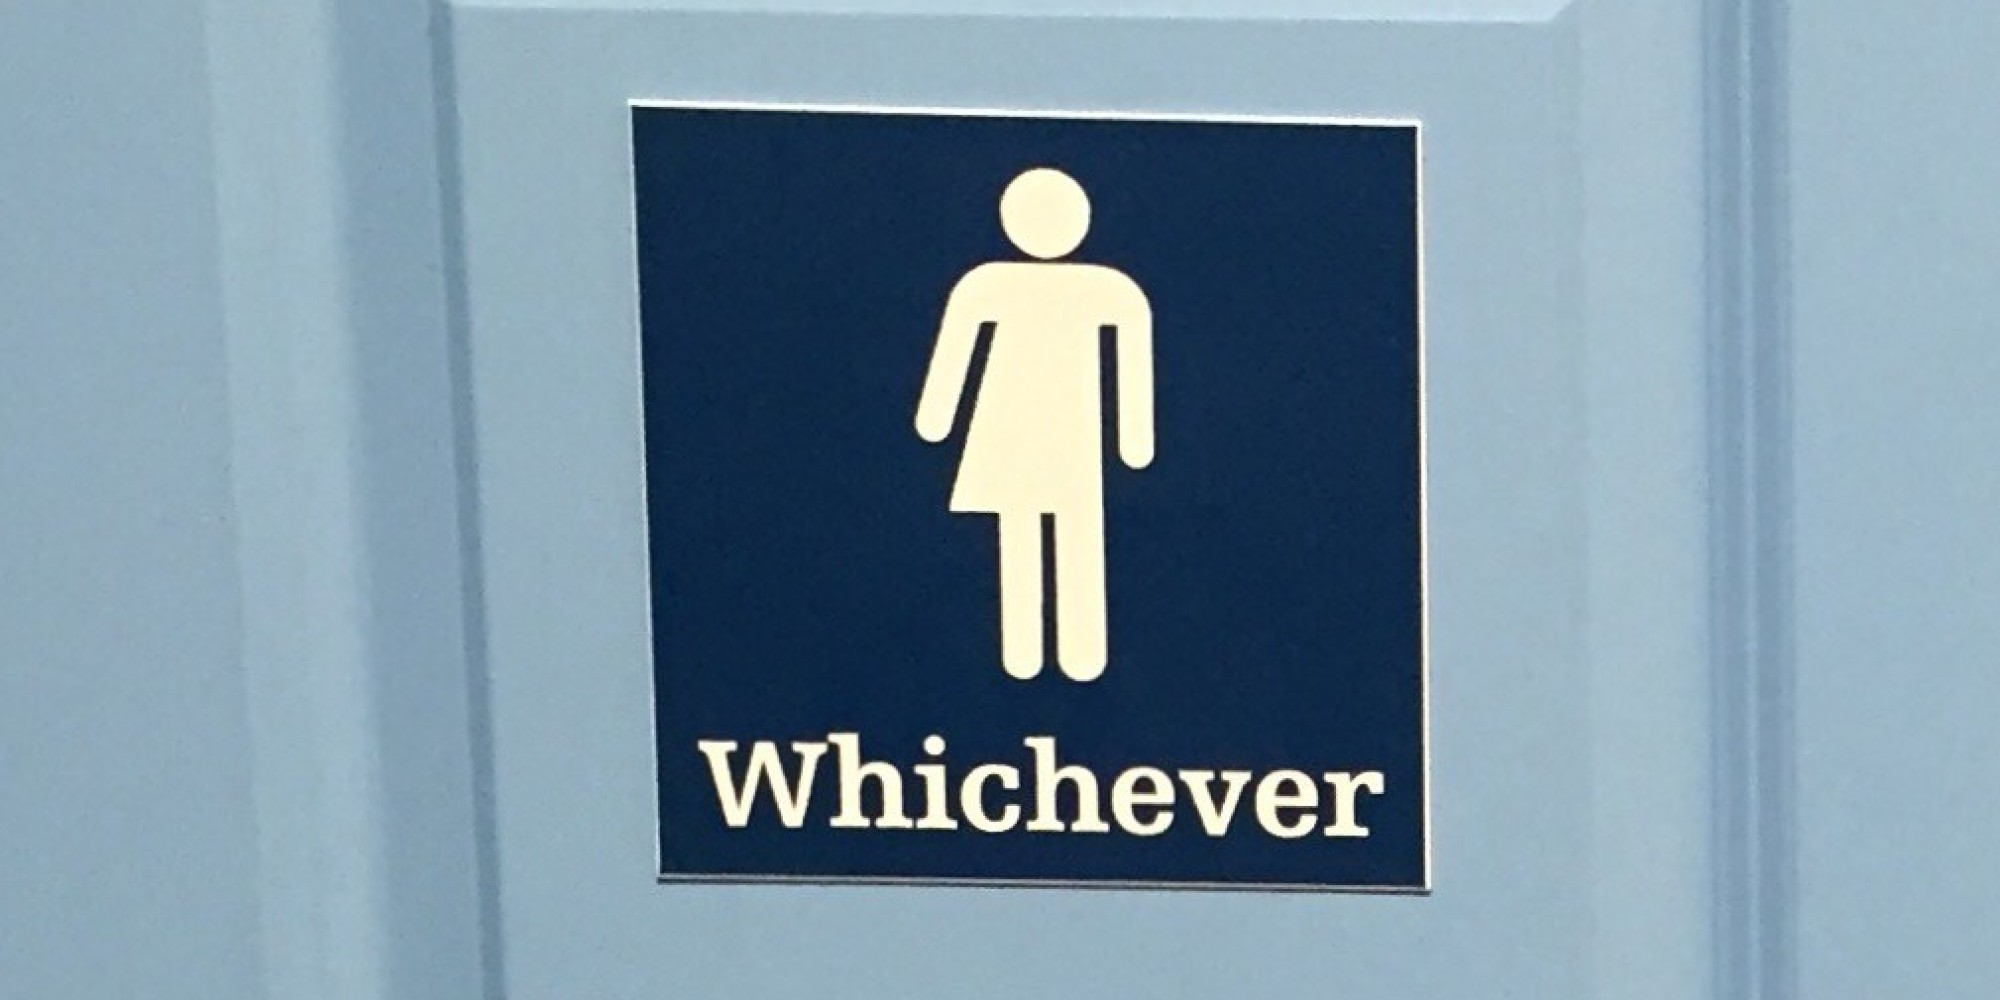 Everybody's Talking About This Gender-Neutral Bathroom